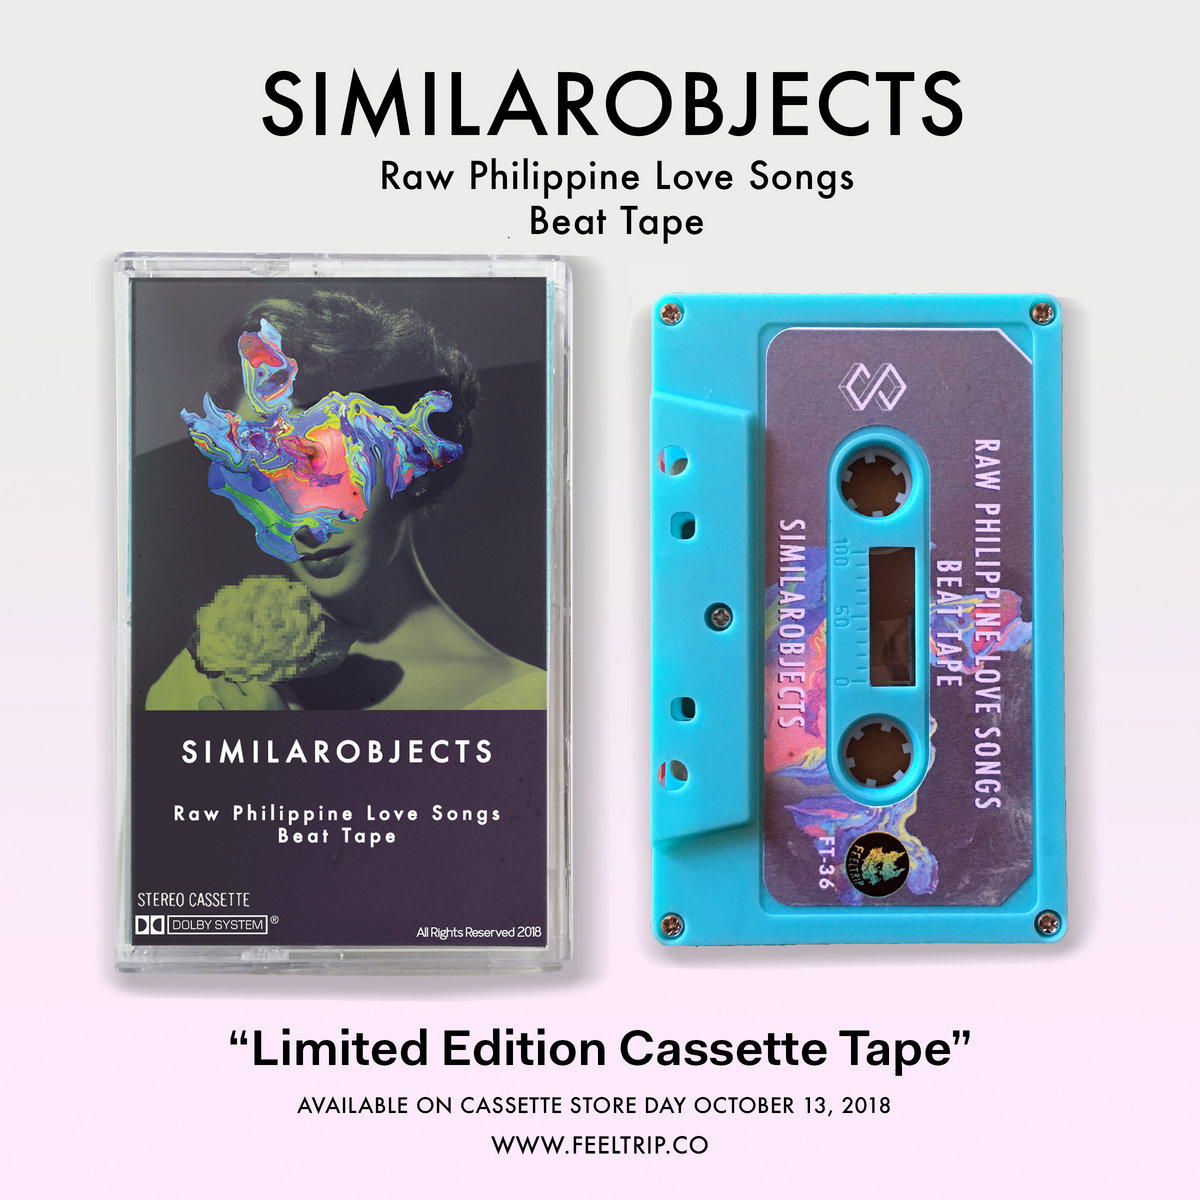 RAW PHILIPPINE LOVE SONG BEAT TAPE | similarobjectsarchive